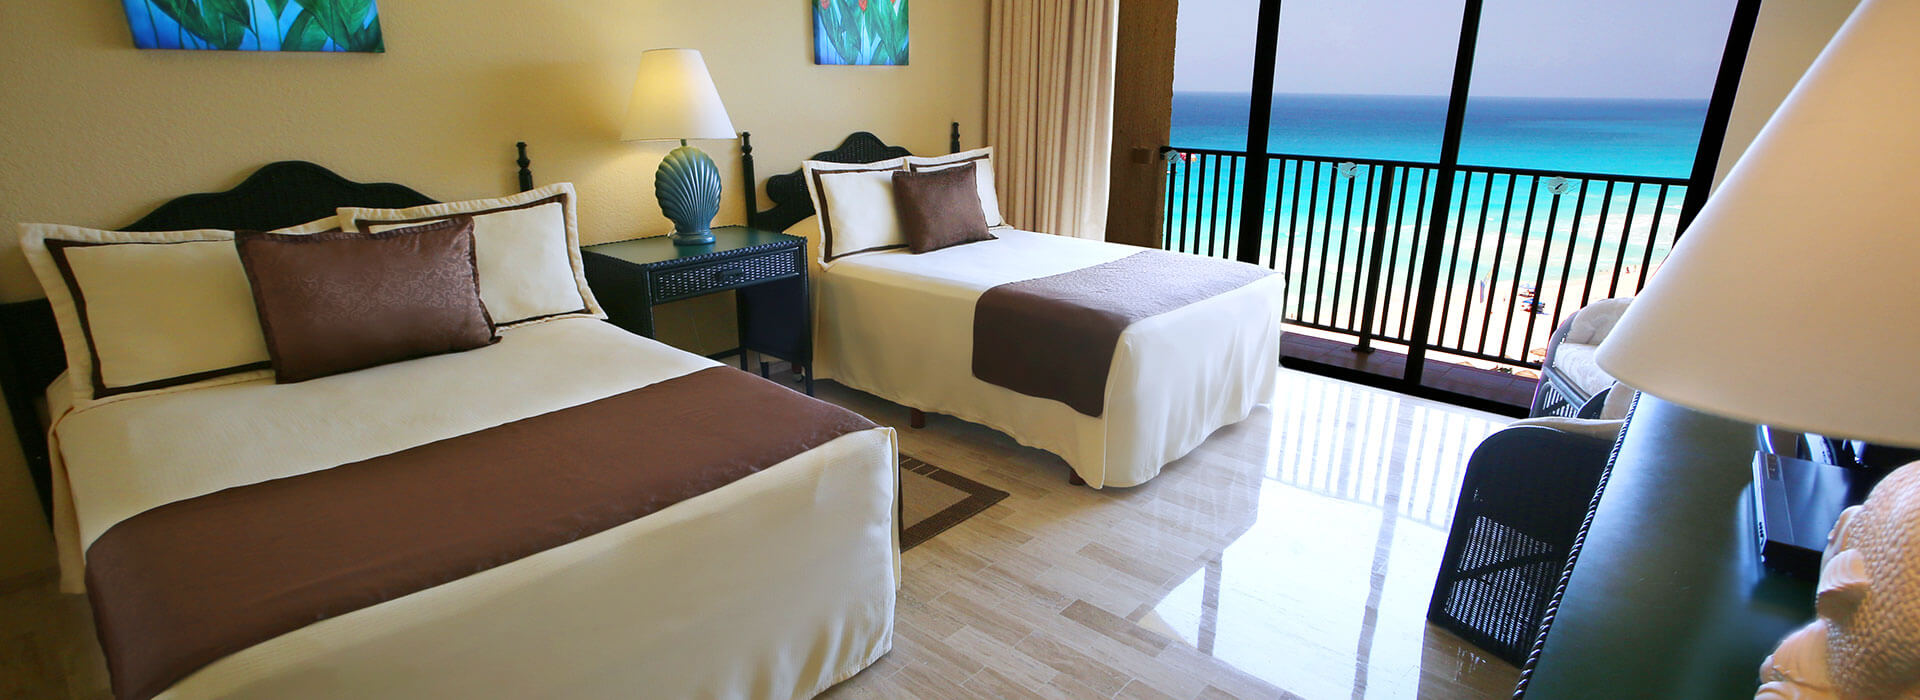 ample 2 bedroom suite in cancun resort